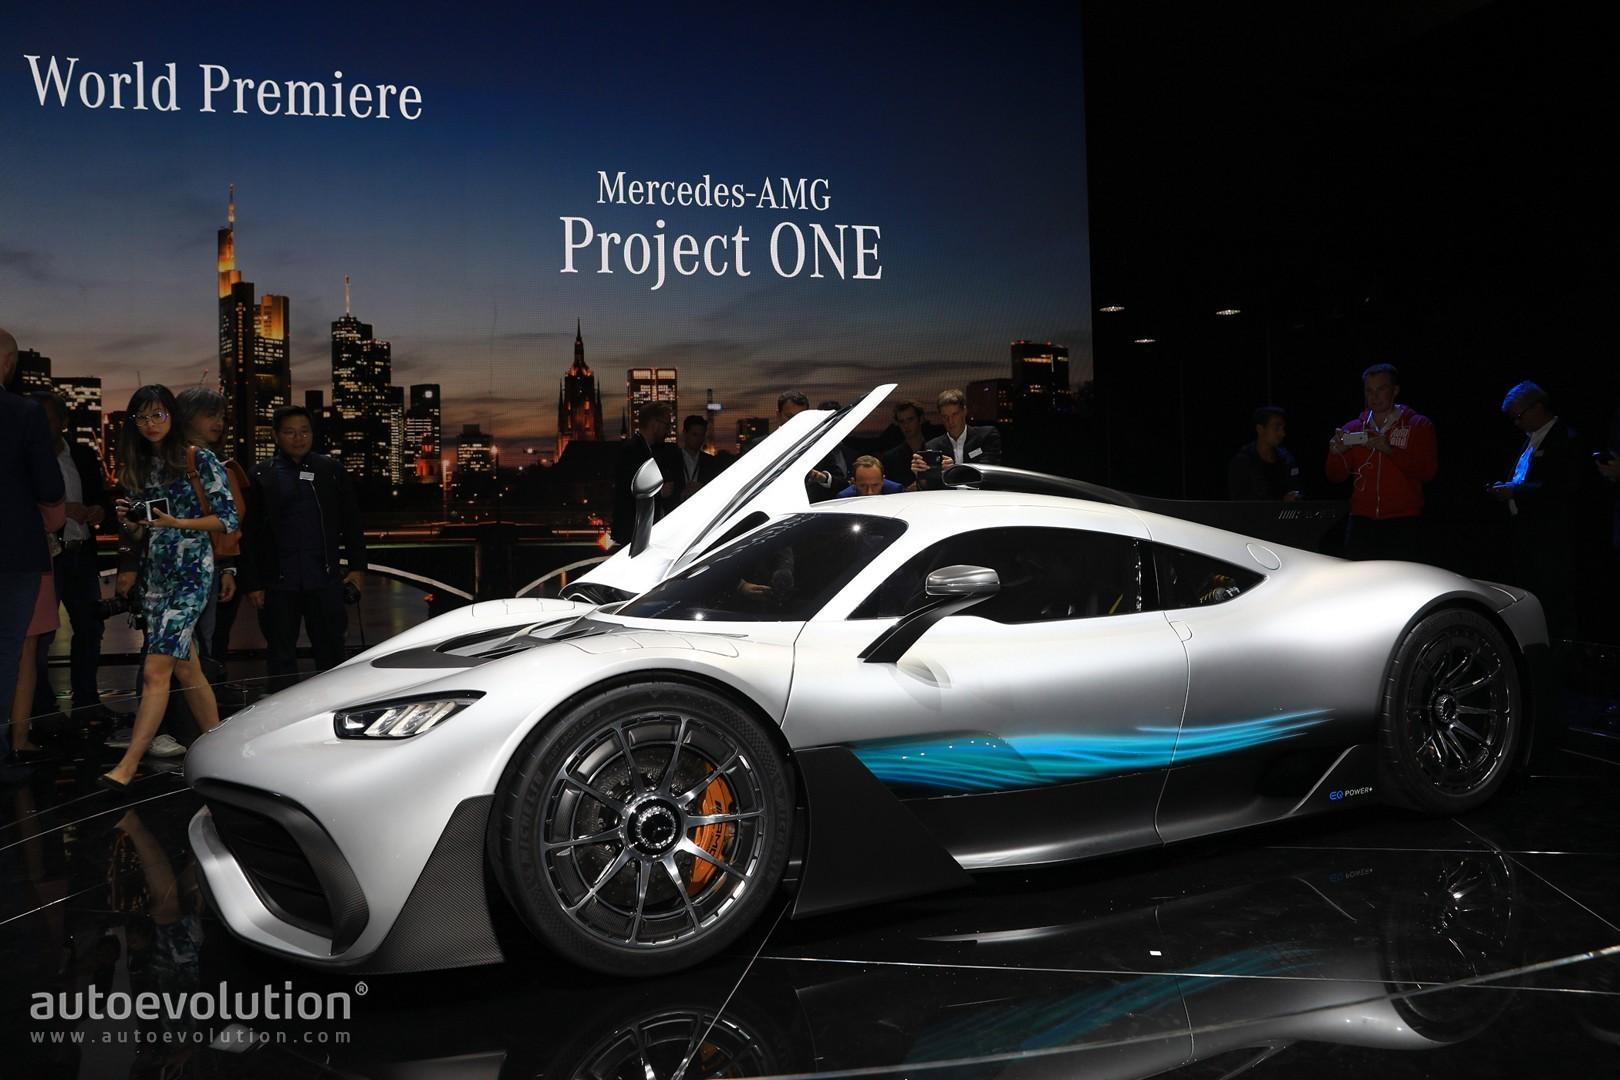 mercedes amg project one looks like a bugatti rival in frankfurt autoevolution. Black Bedroom Furniture Sets. Home Design Ideas